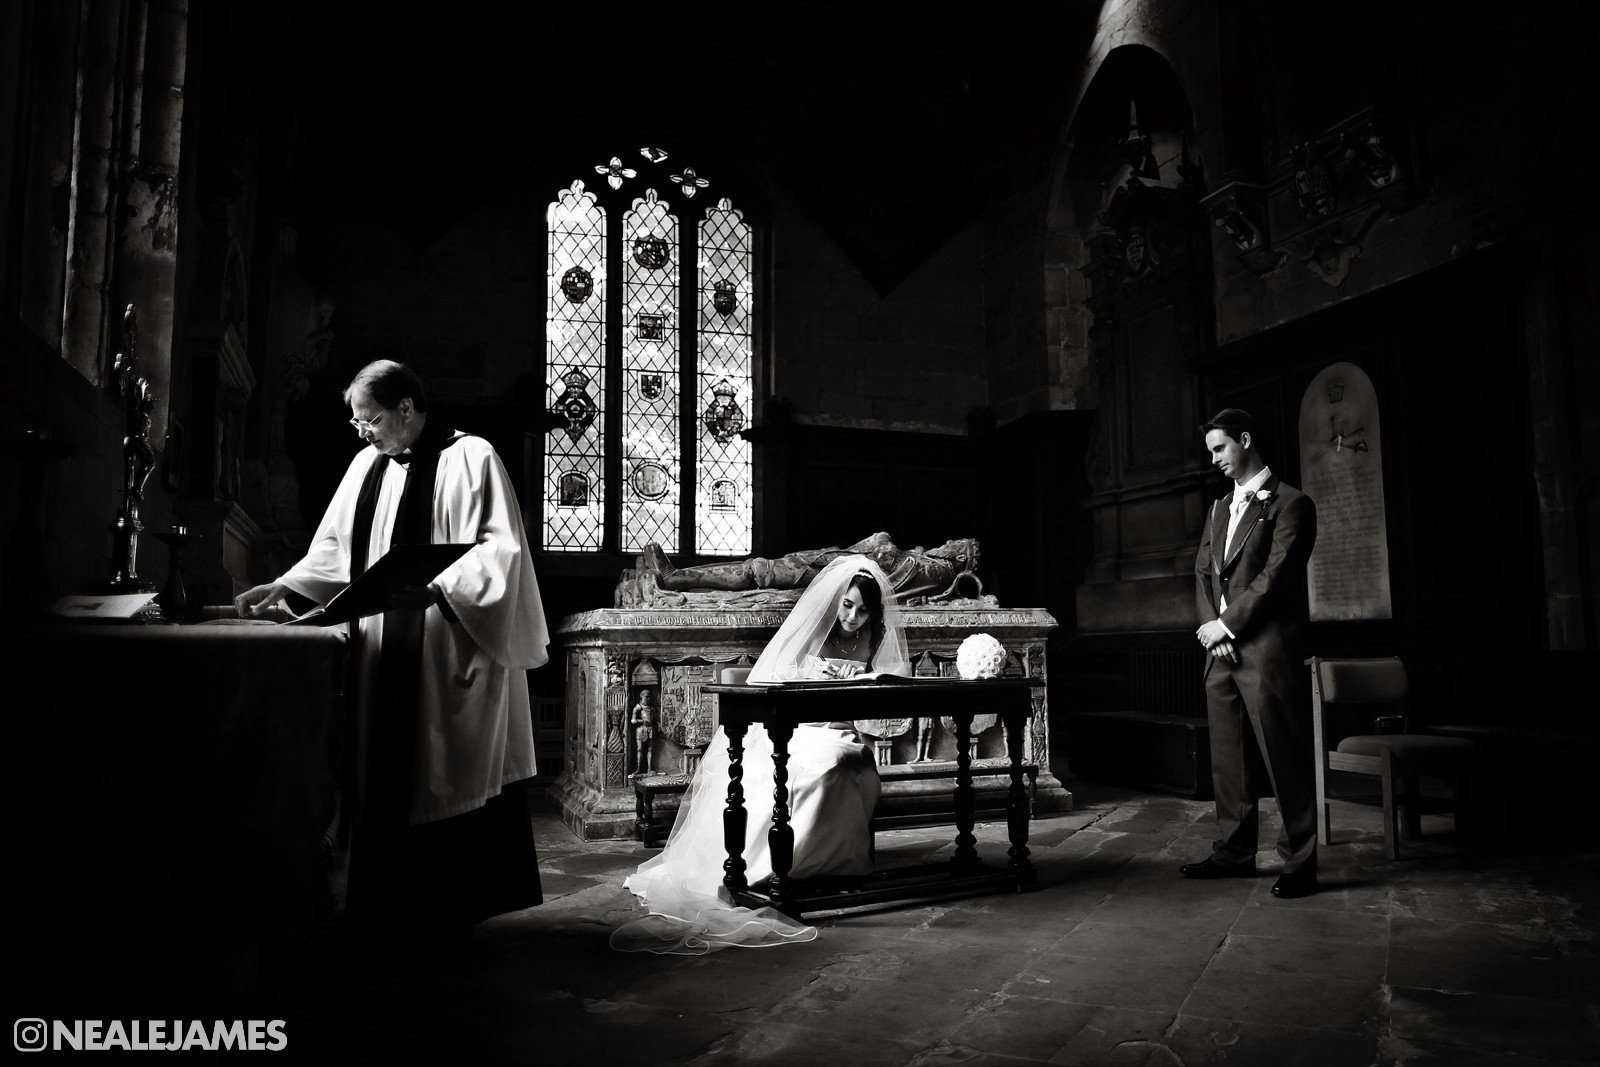 Black and white photograph of bride and groom signing the register at the alter in an English church